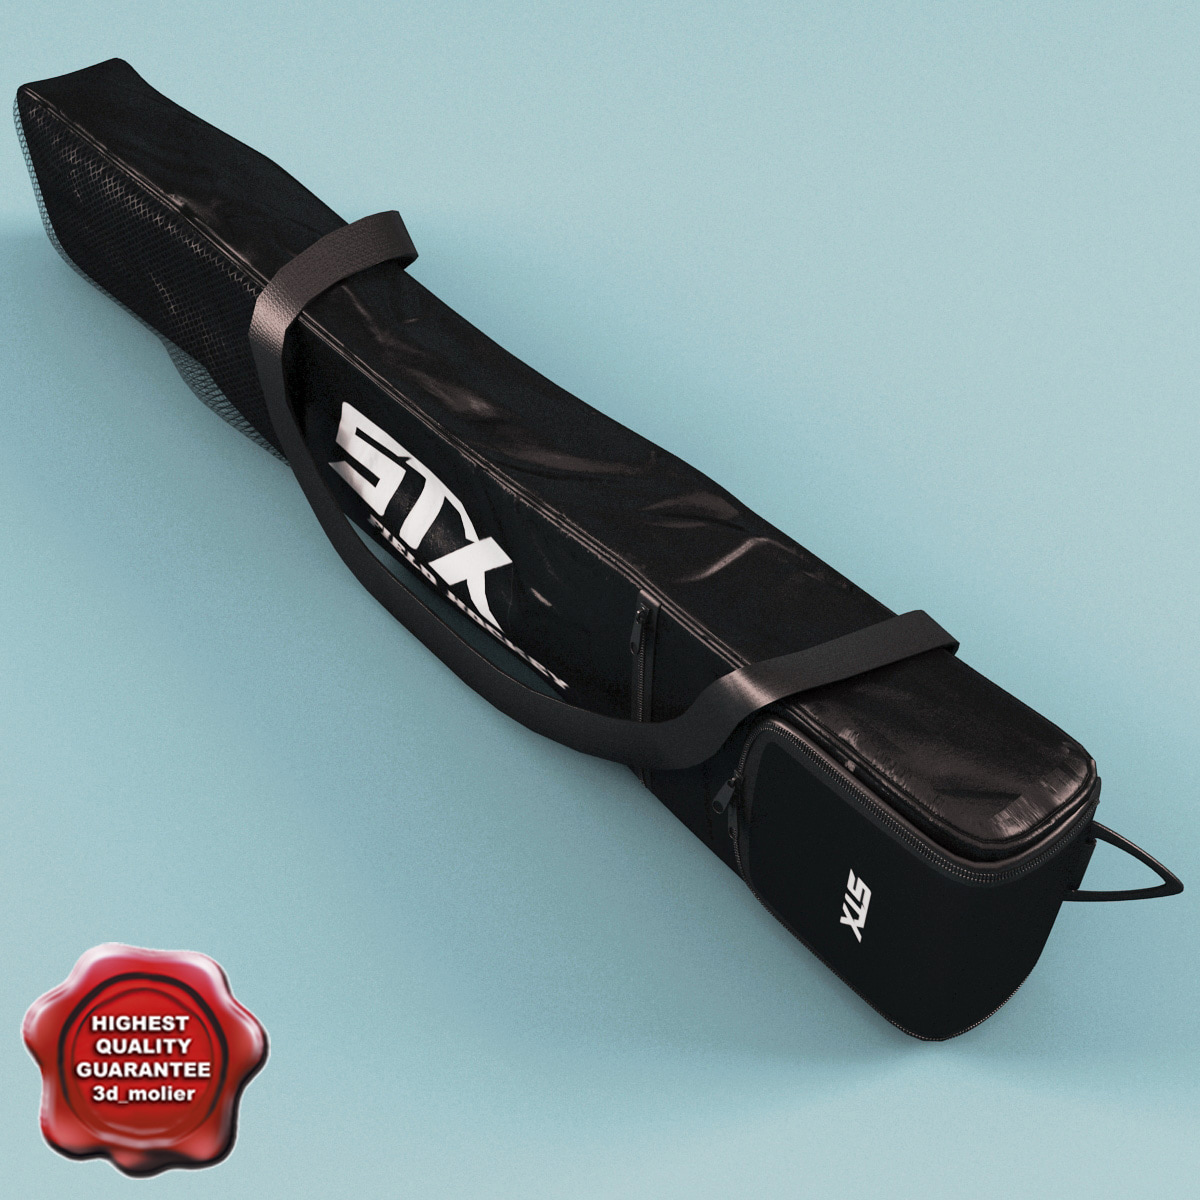 Hockey_Stick_Bag_STX11_Black_00.jpg